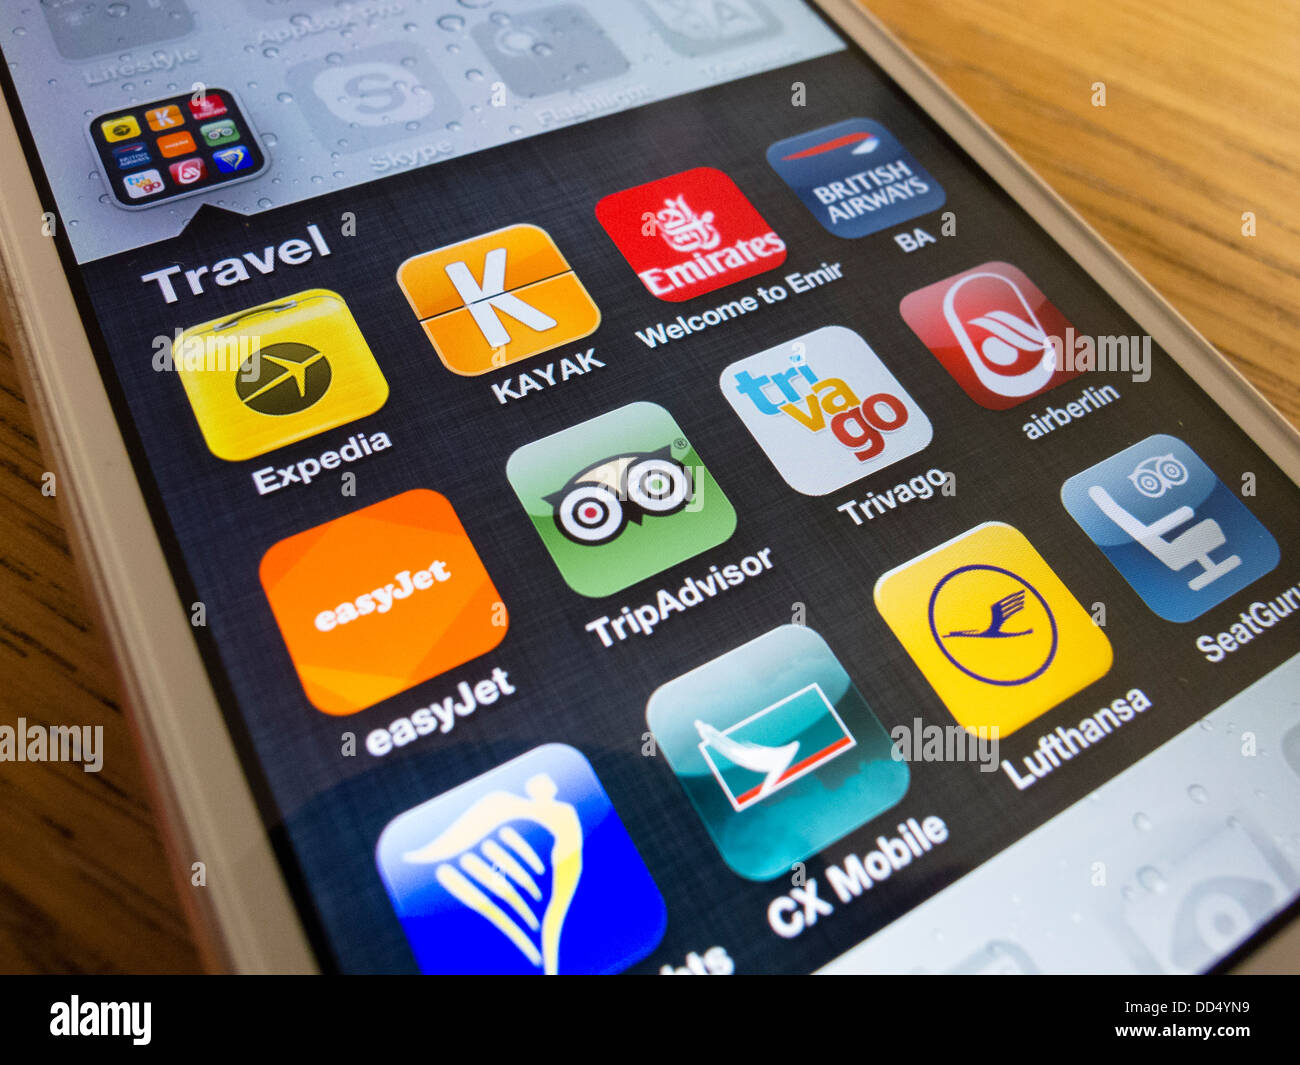 detail of many travel apps on an iPhone 5 smart phone - Stock Image